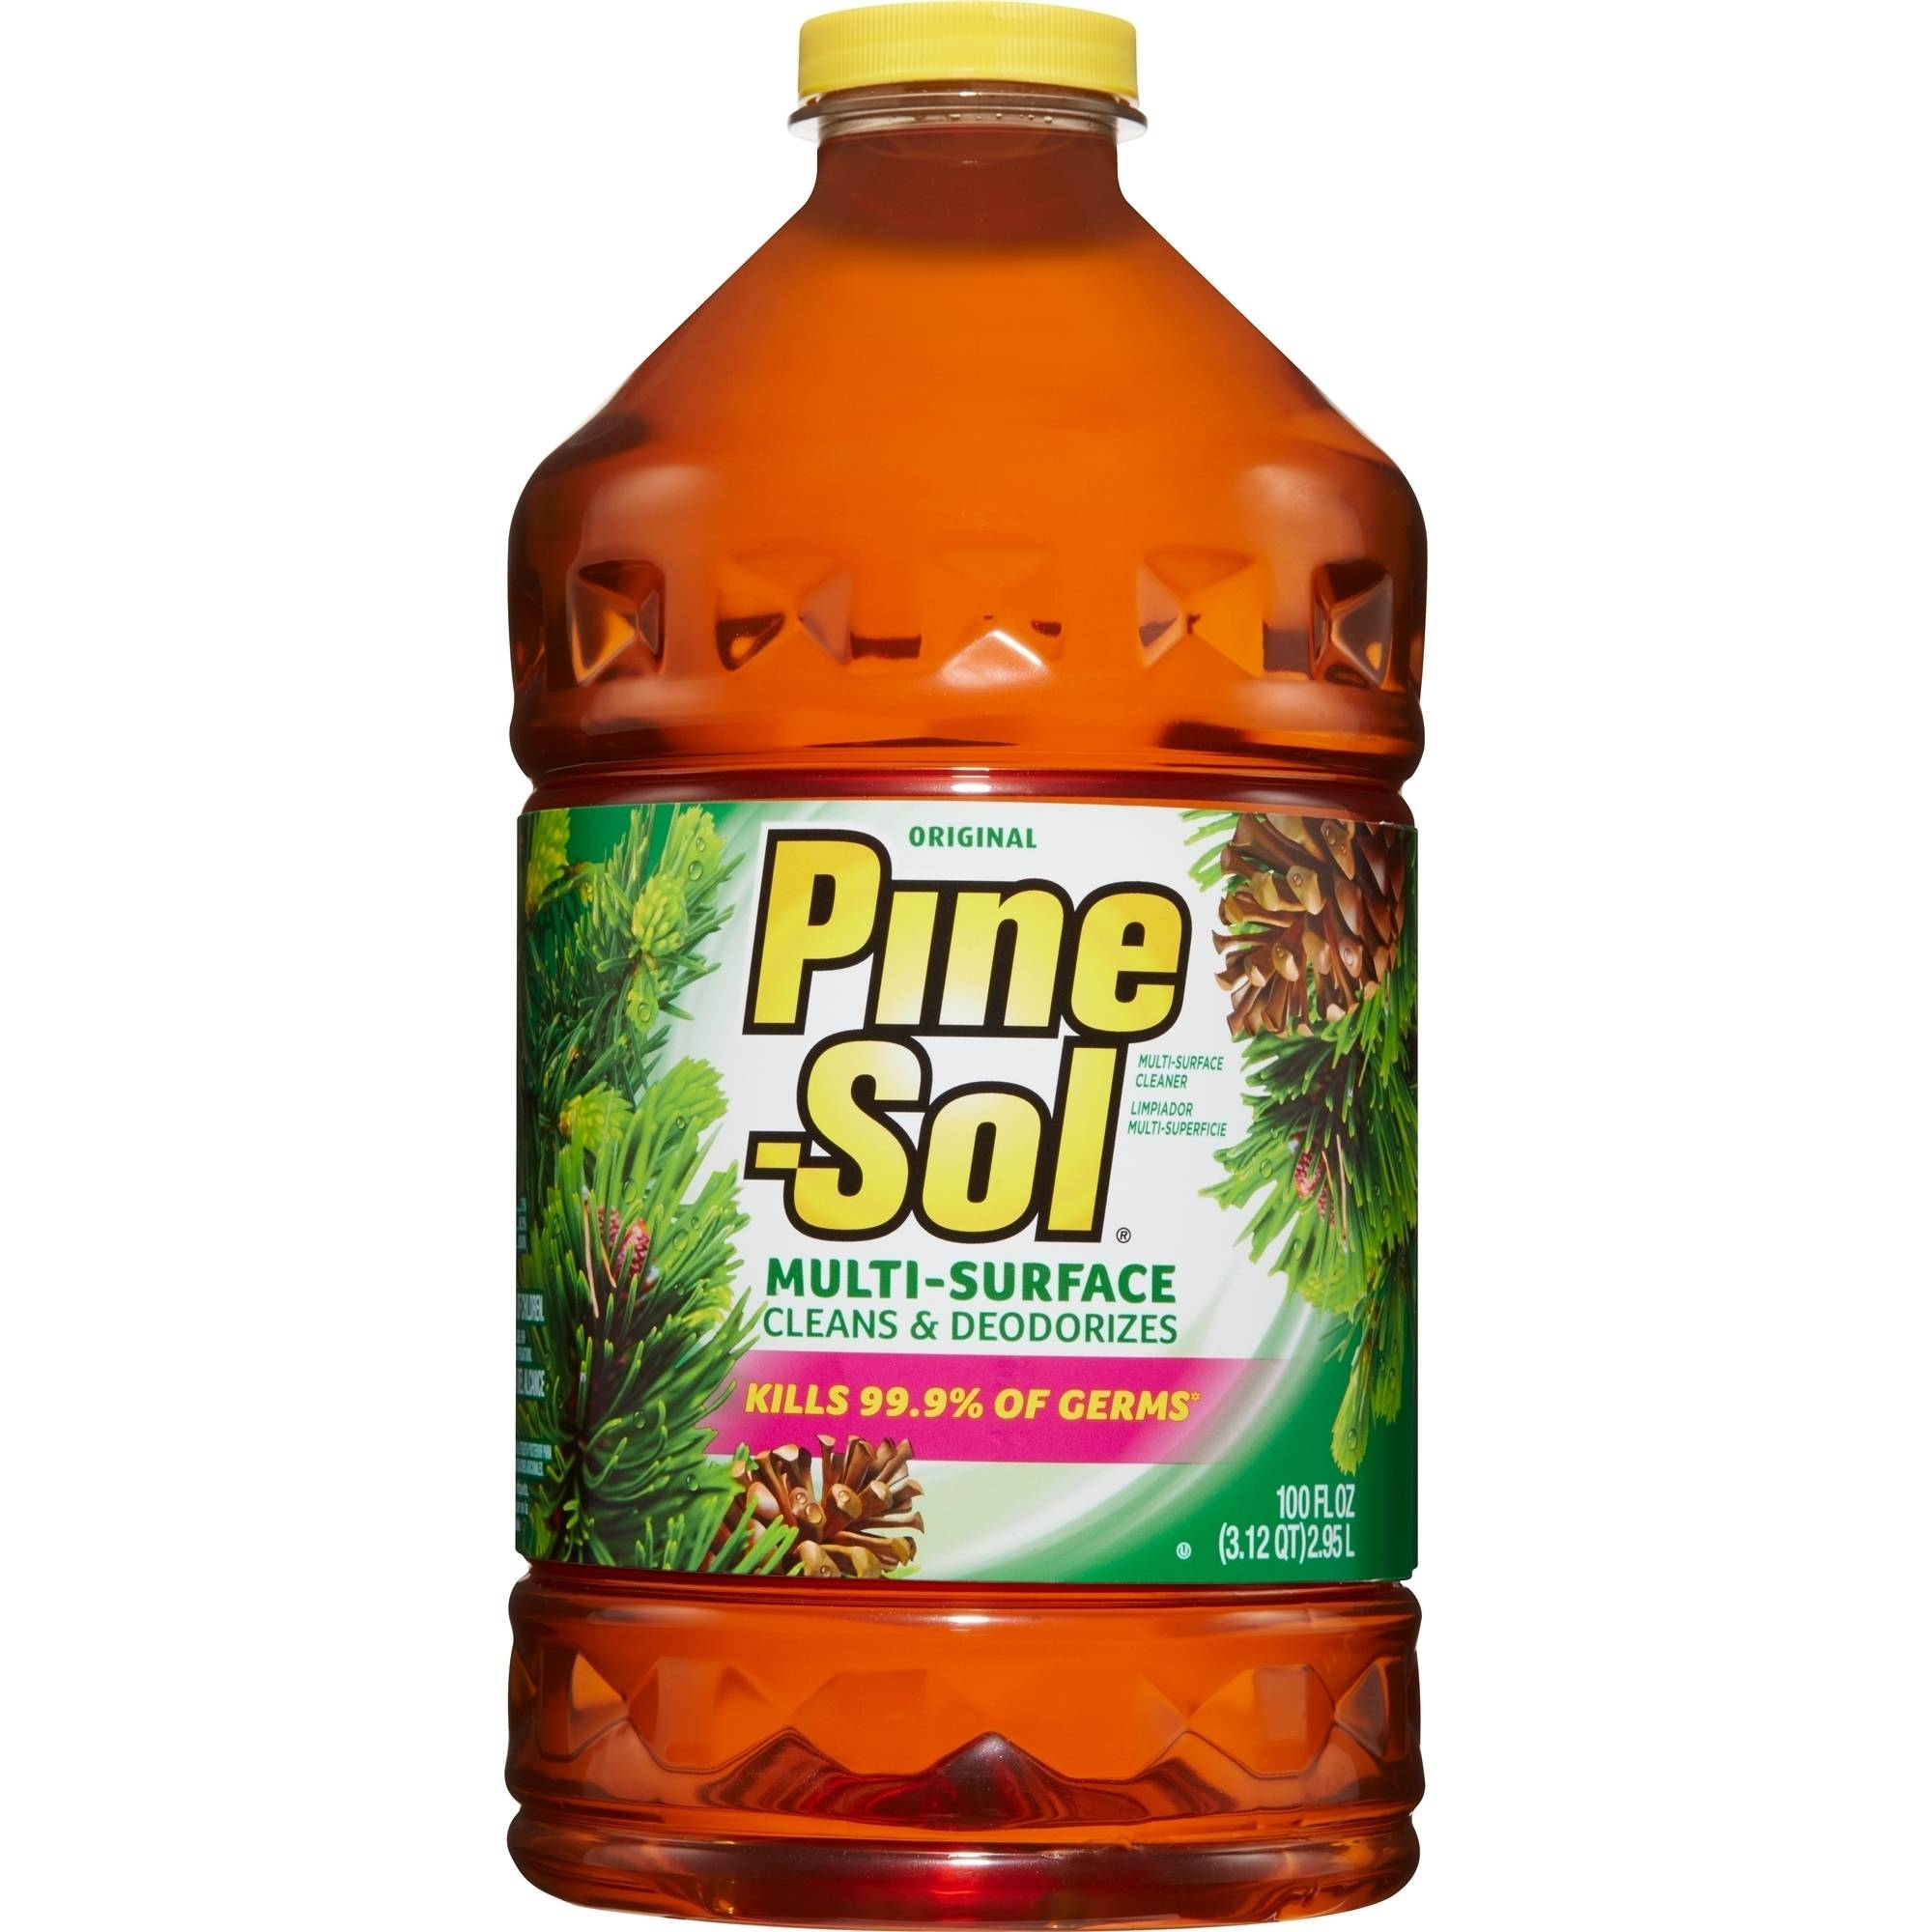 Pine-Sol Multi-Surface Cleaner, Original, 100 Ounce Bottle